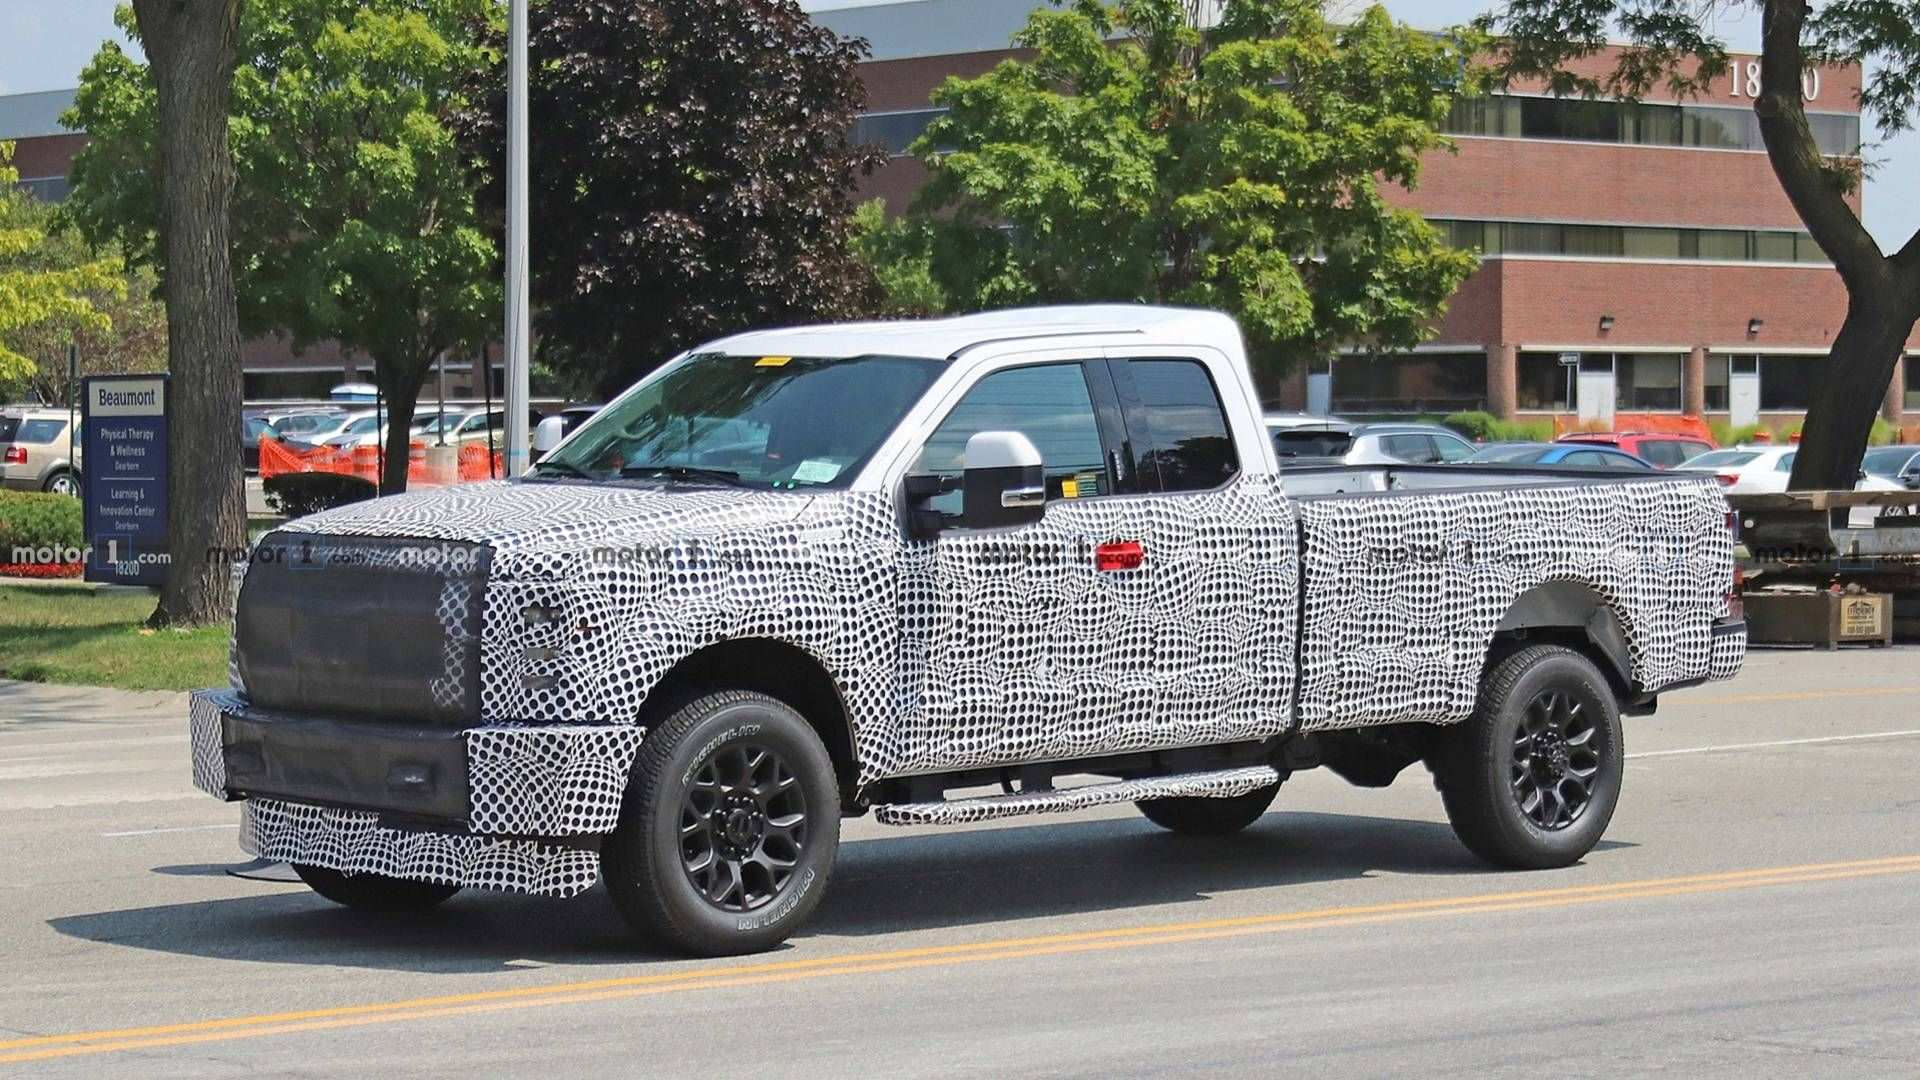 66 Concept of Spy Shots Ford F350 Diesel Rumors by Spy Shots Ford F350 Diesel